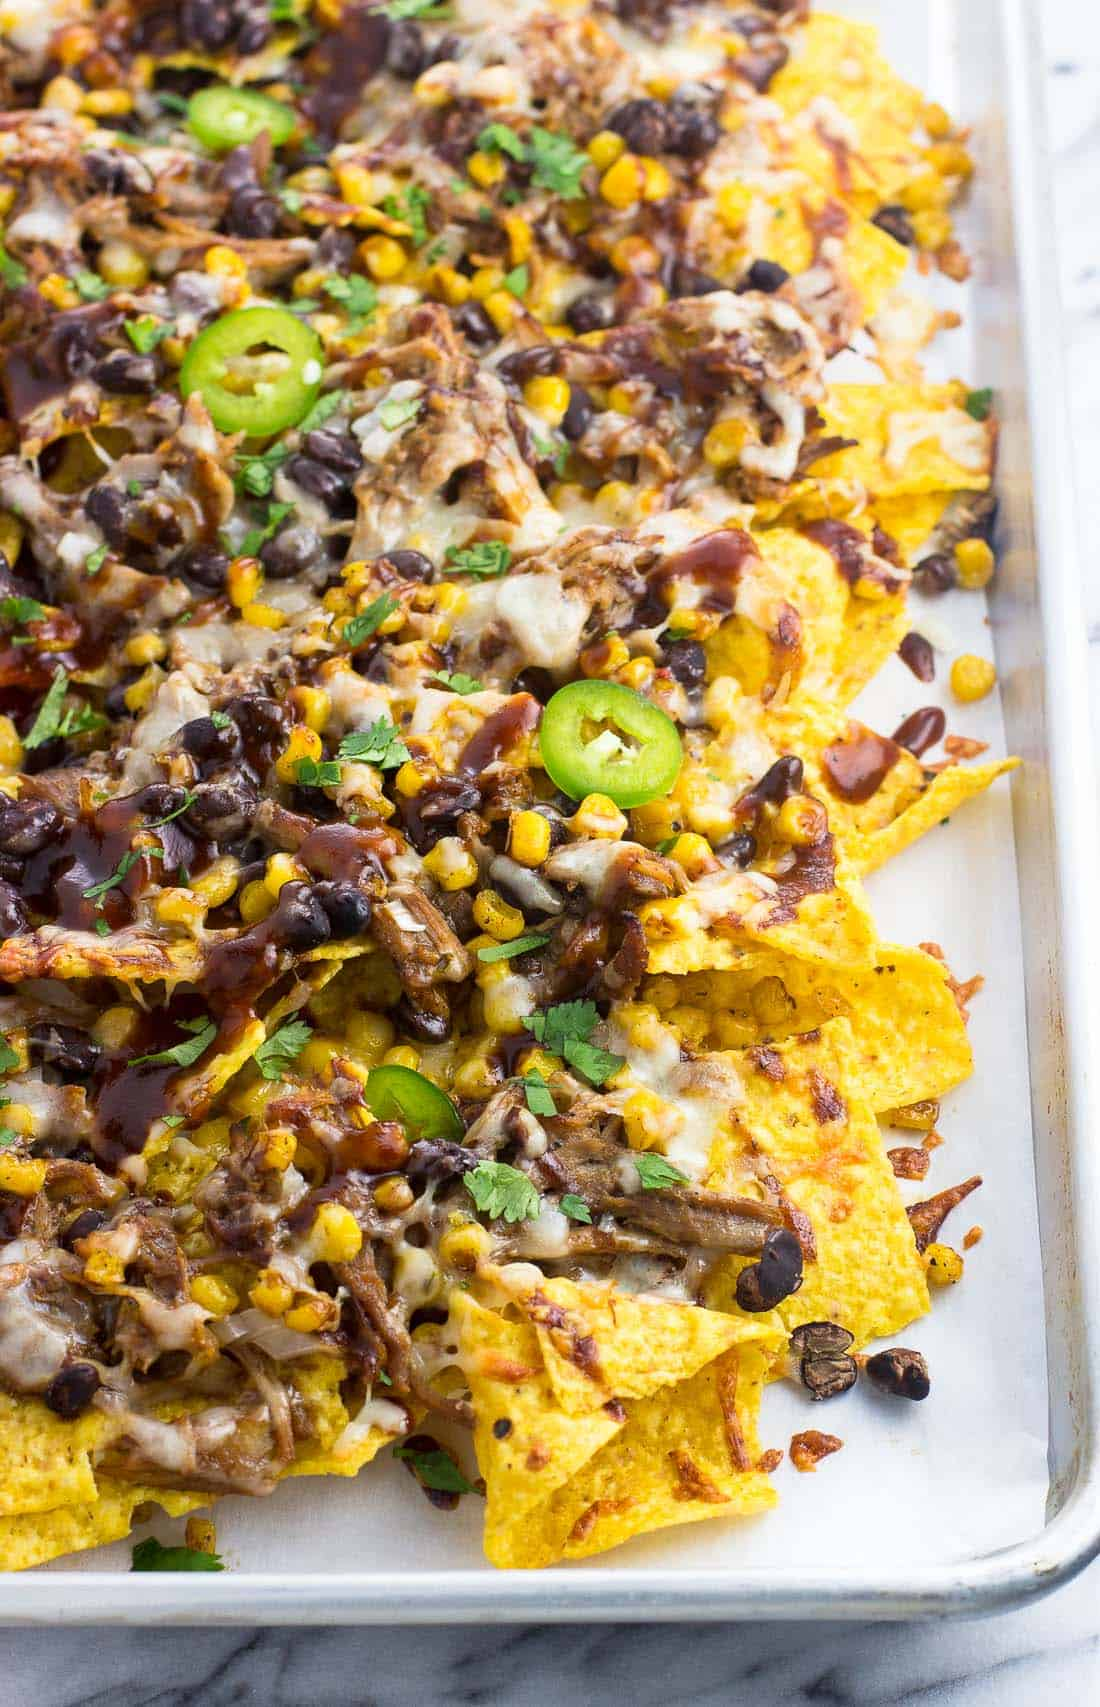 Baked BBQ pulled pork nachos on a tray topped with jalapeno slices